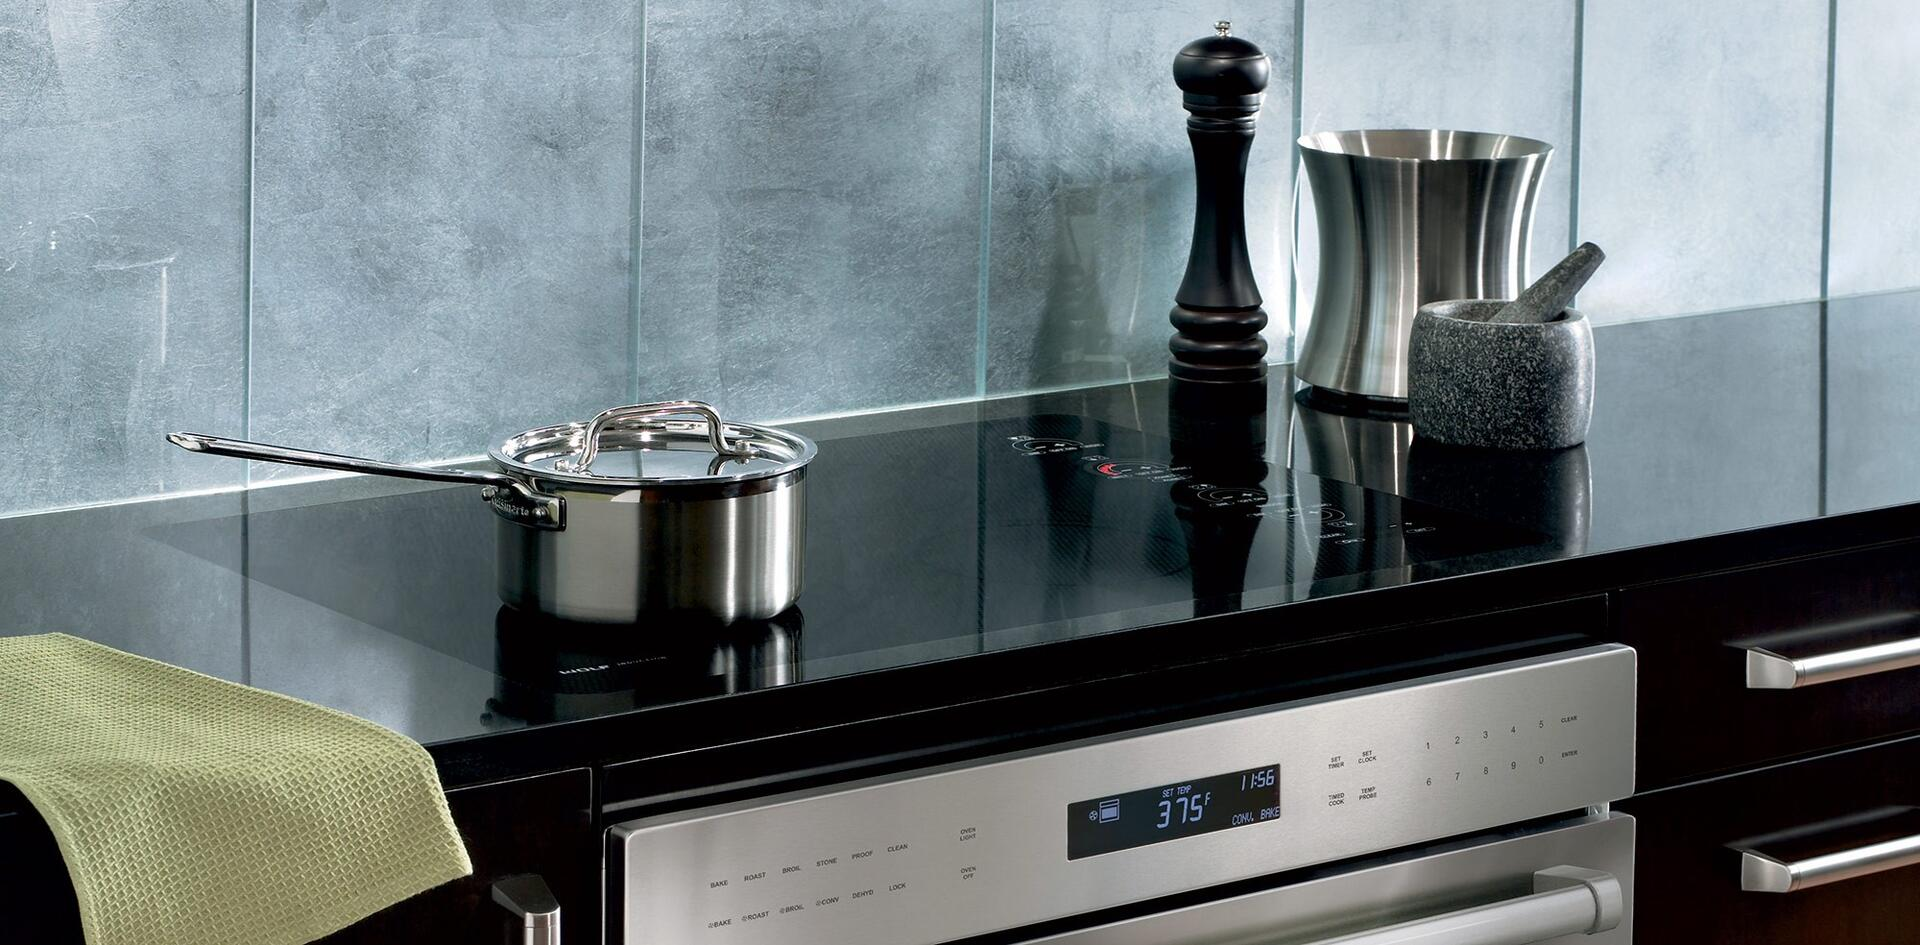 Wolf CT30IU 30 Inch 4 Element Yes Cooktop, in Black | Appliances ...